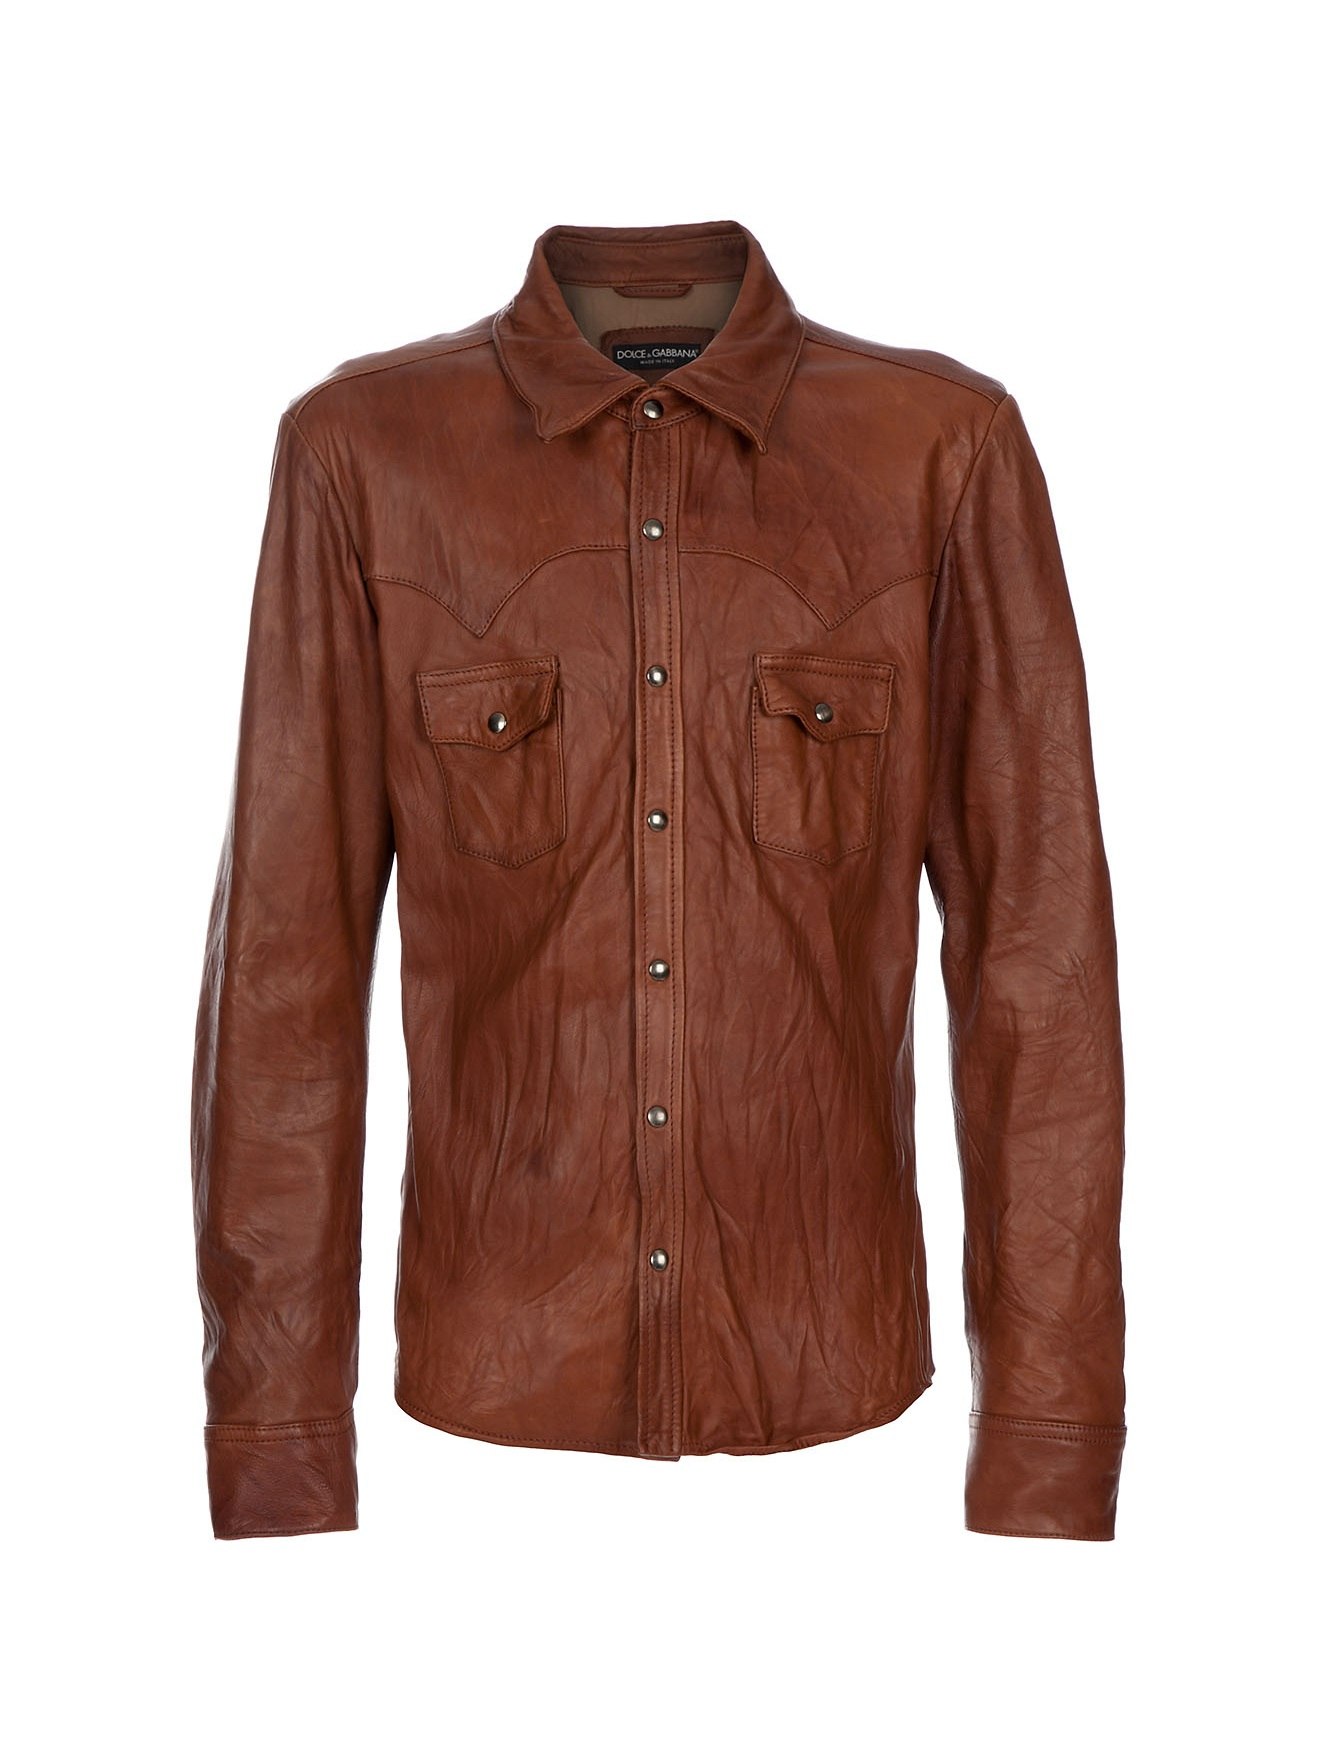 Dolce Amp Gabbana Leather Shirt In Brown For Men Lyst